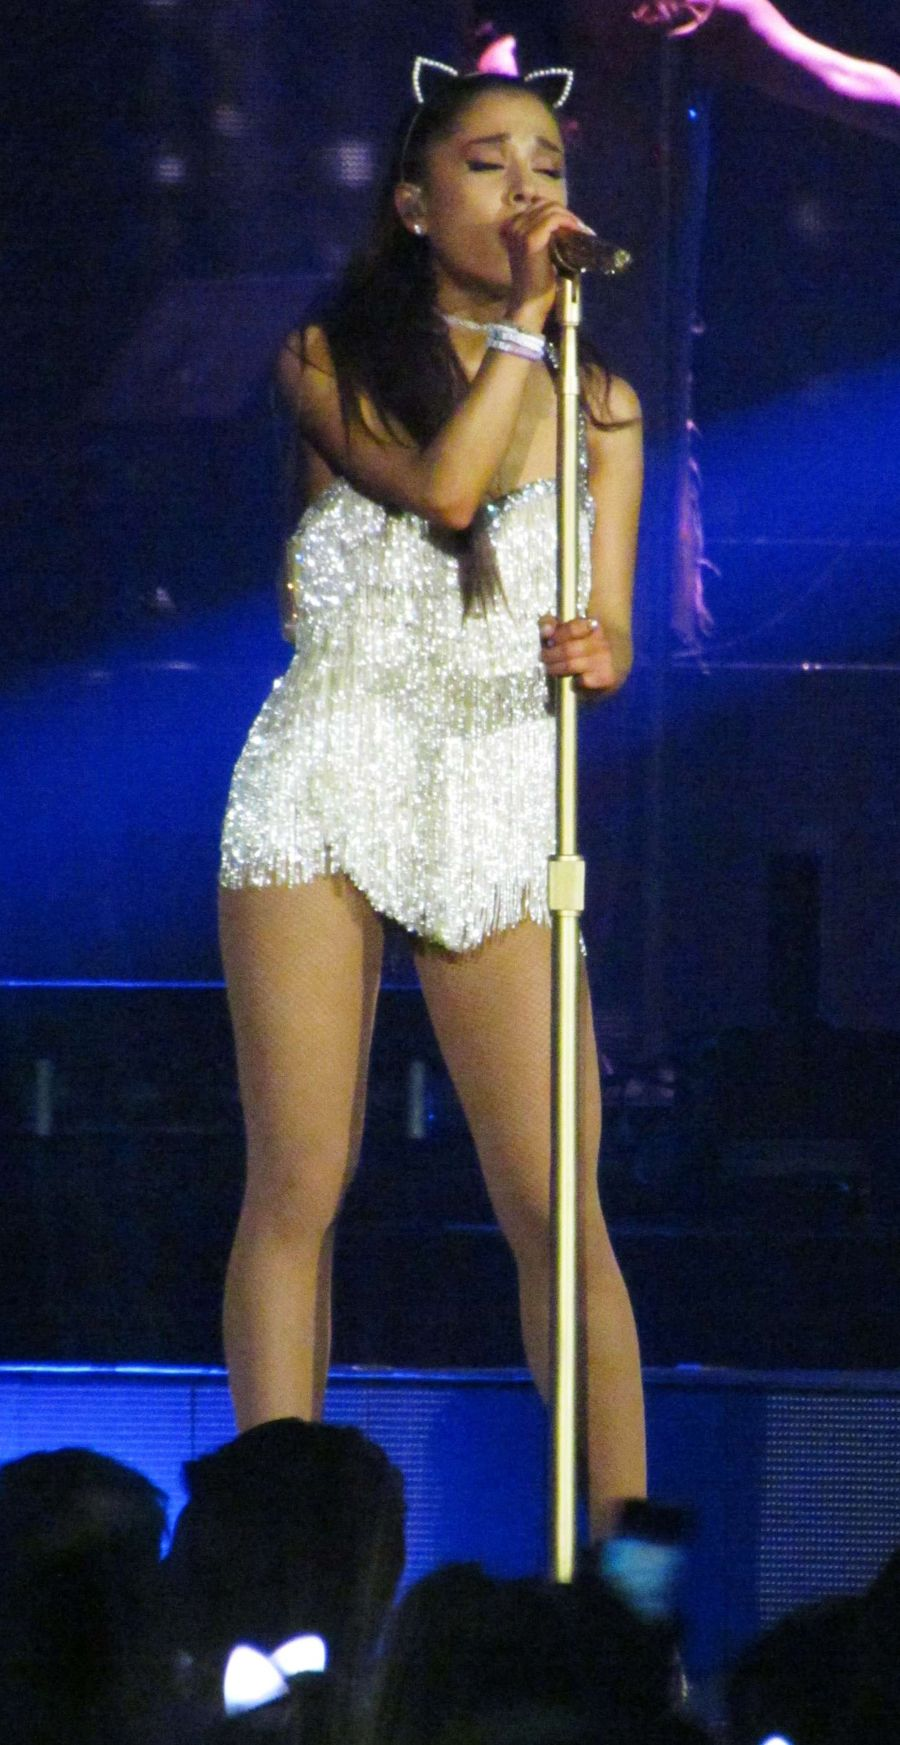 Ariana Grande begins Honeymoon Tour in London